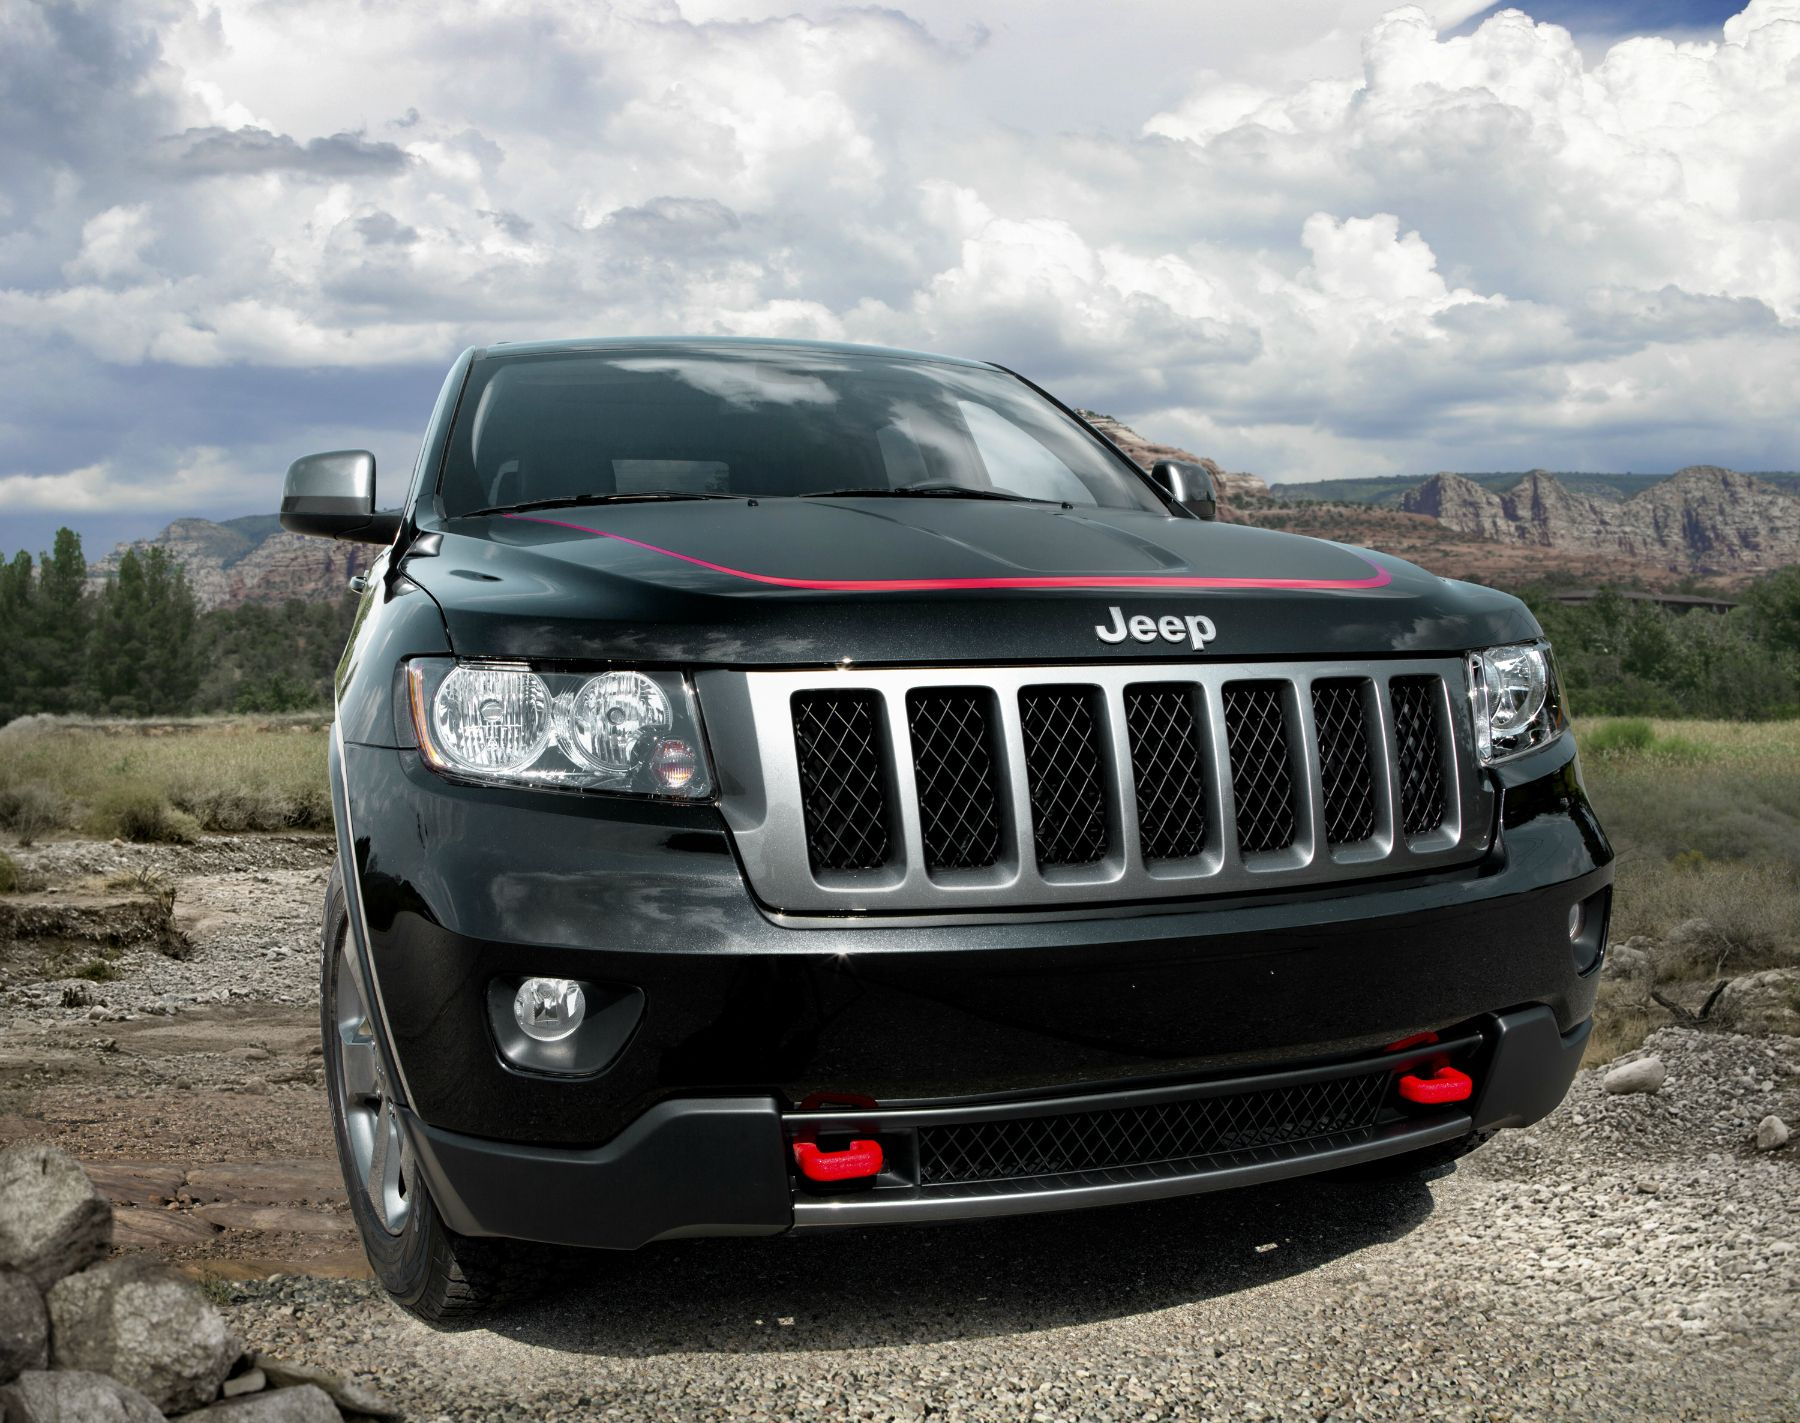 Introducing The 2013 Jeep Grand Cherokee Trailhawk 2013 Jeep